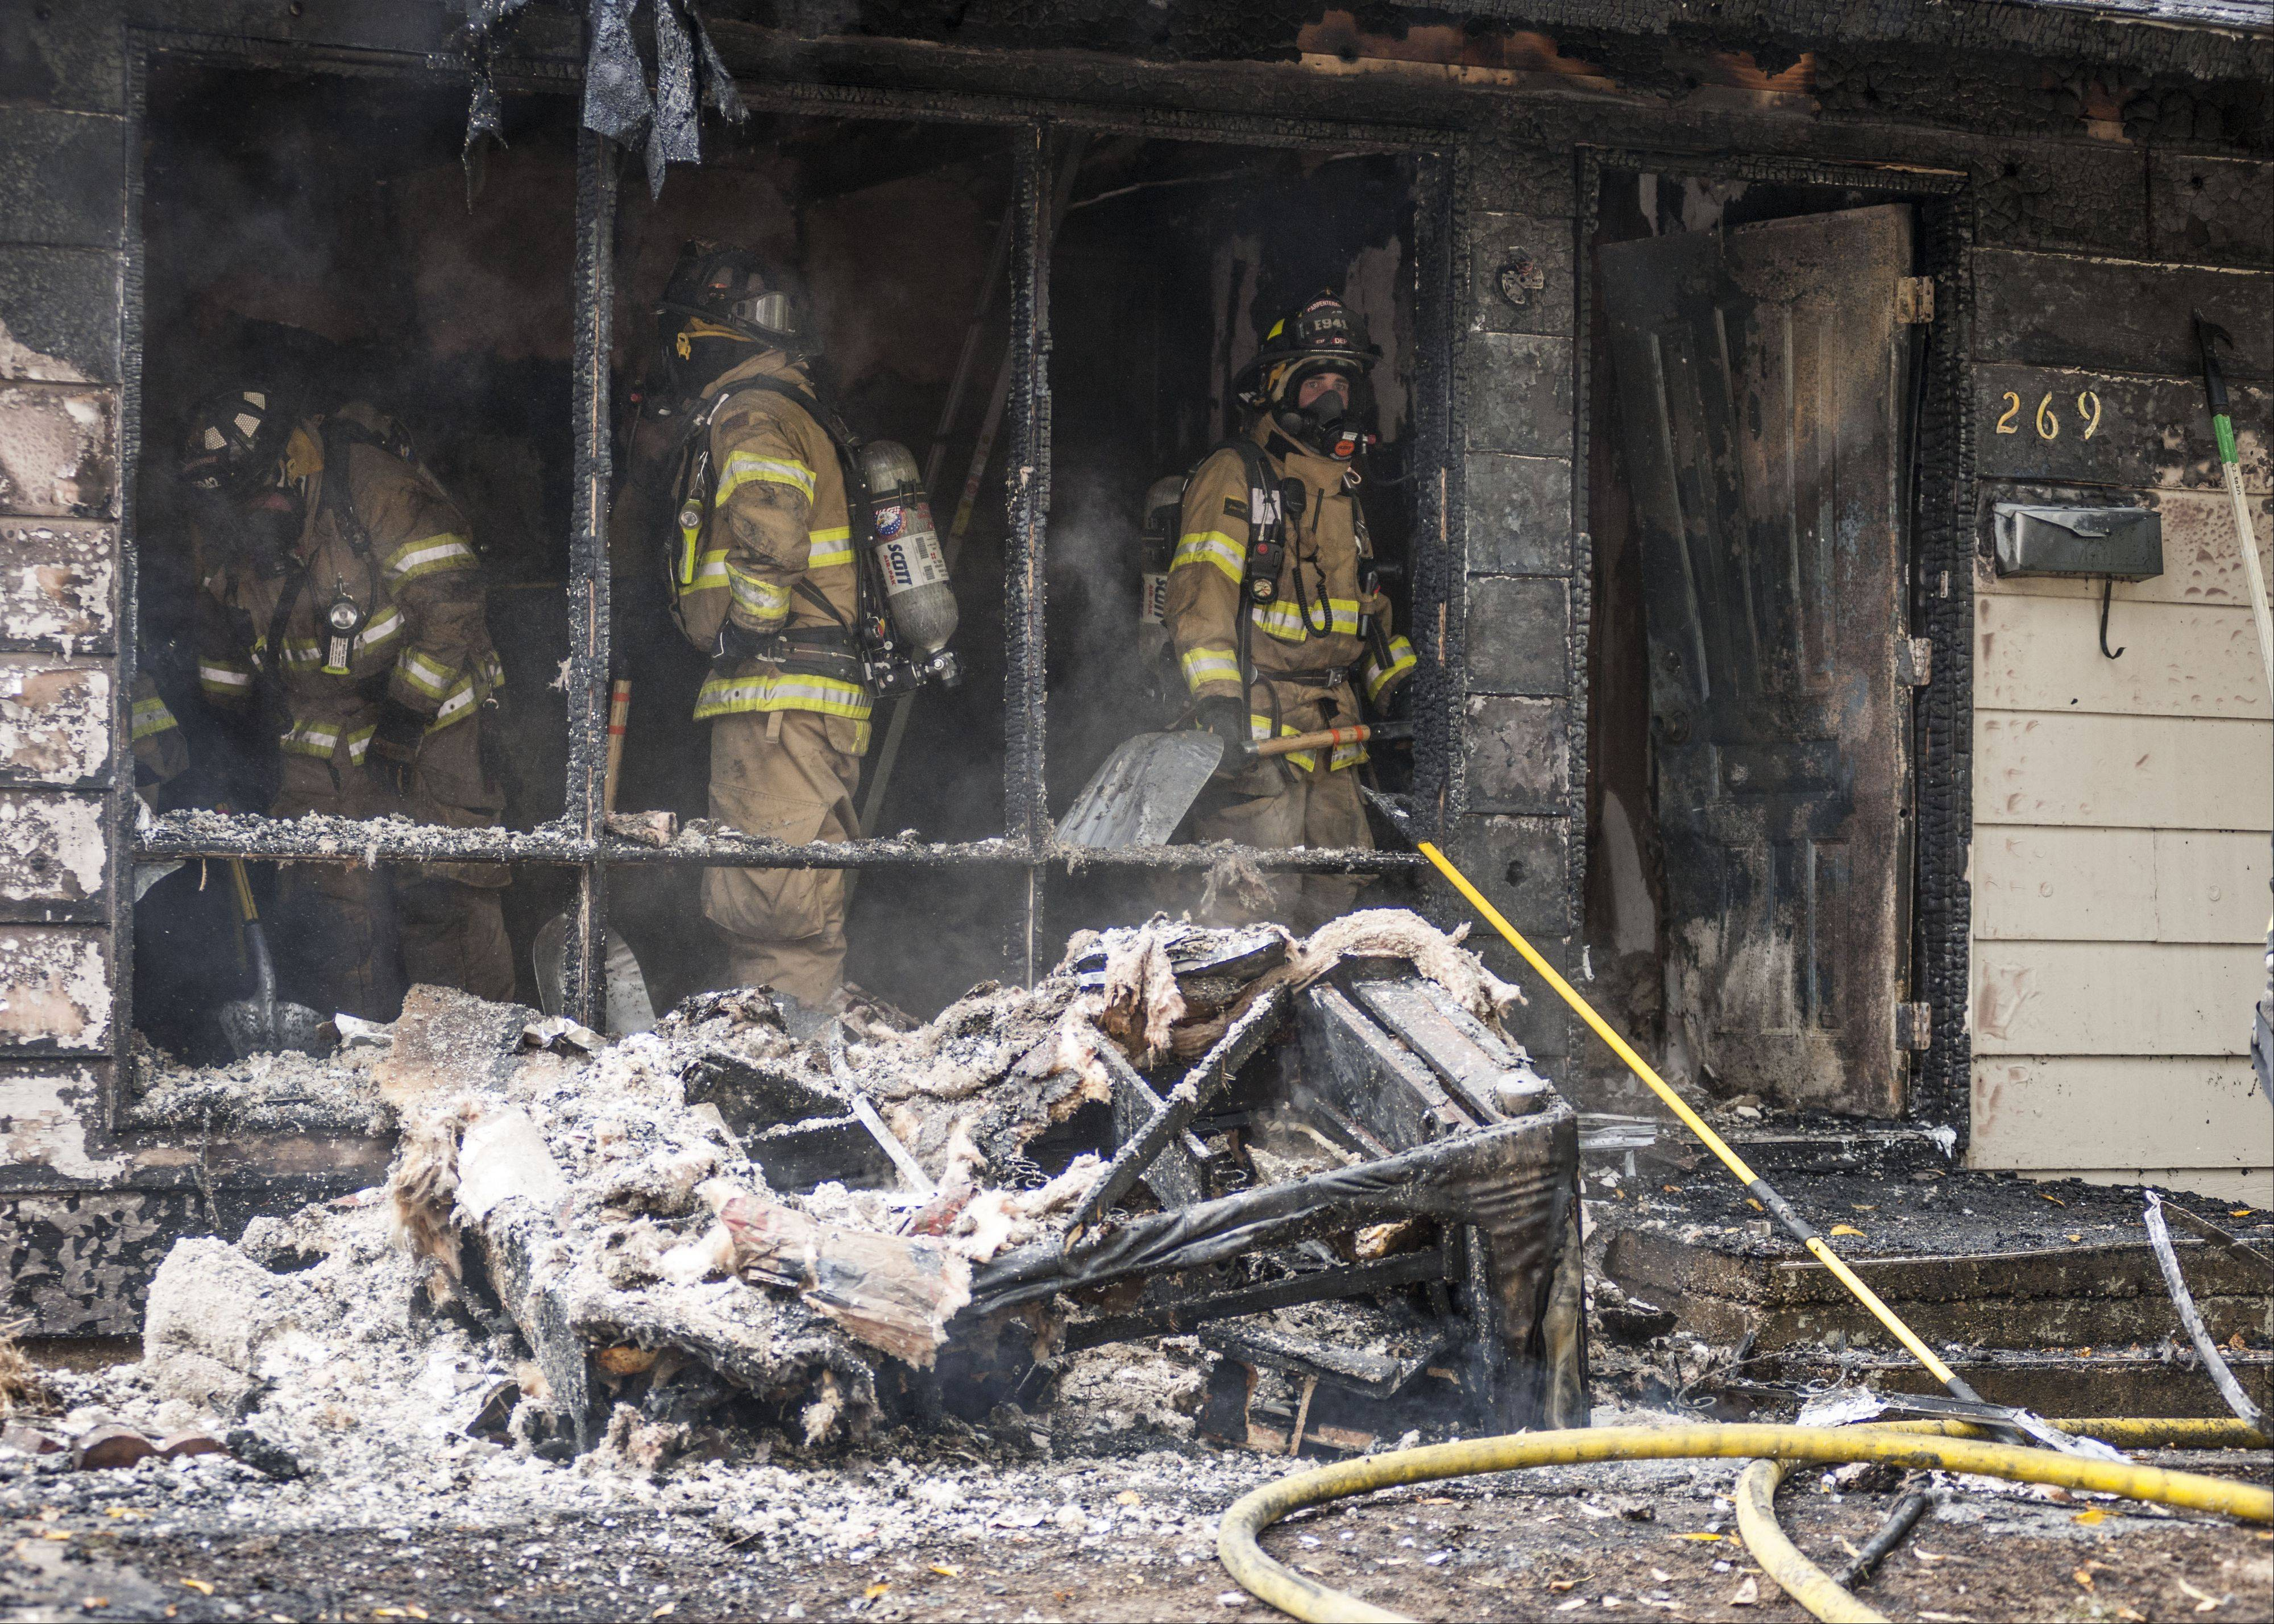 A woman and her 4-year-old nephew suffered minor injuries in a Thursday morning fire in Carpentersville.